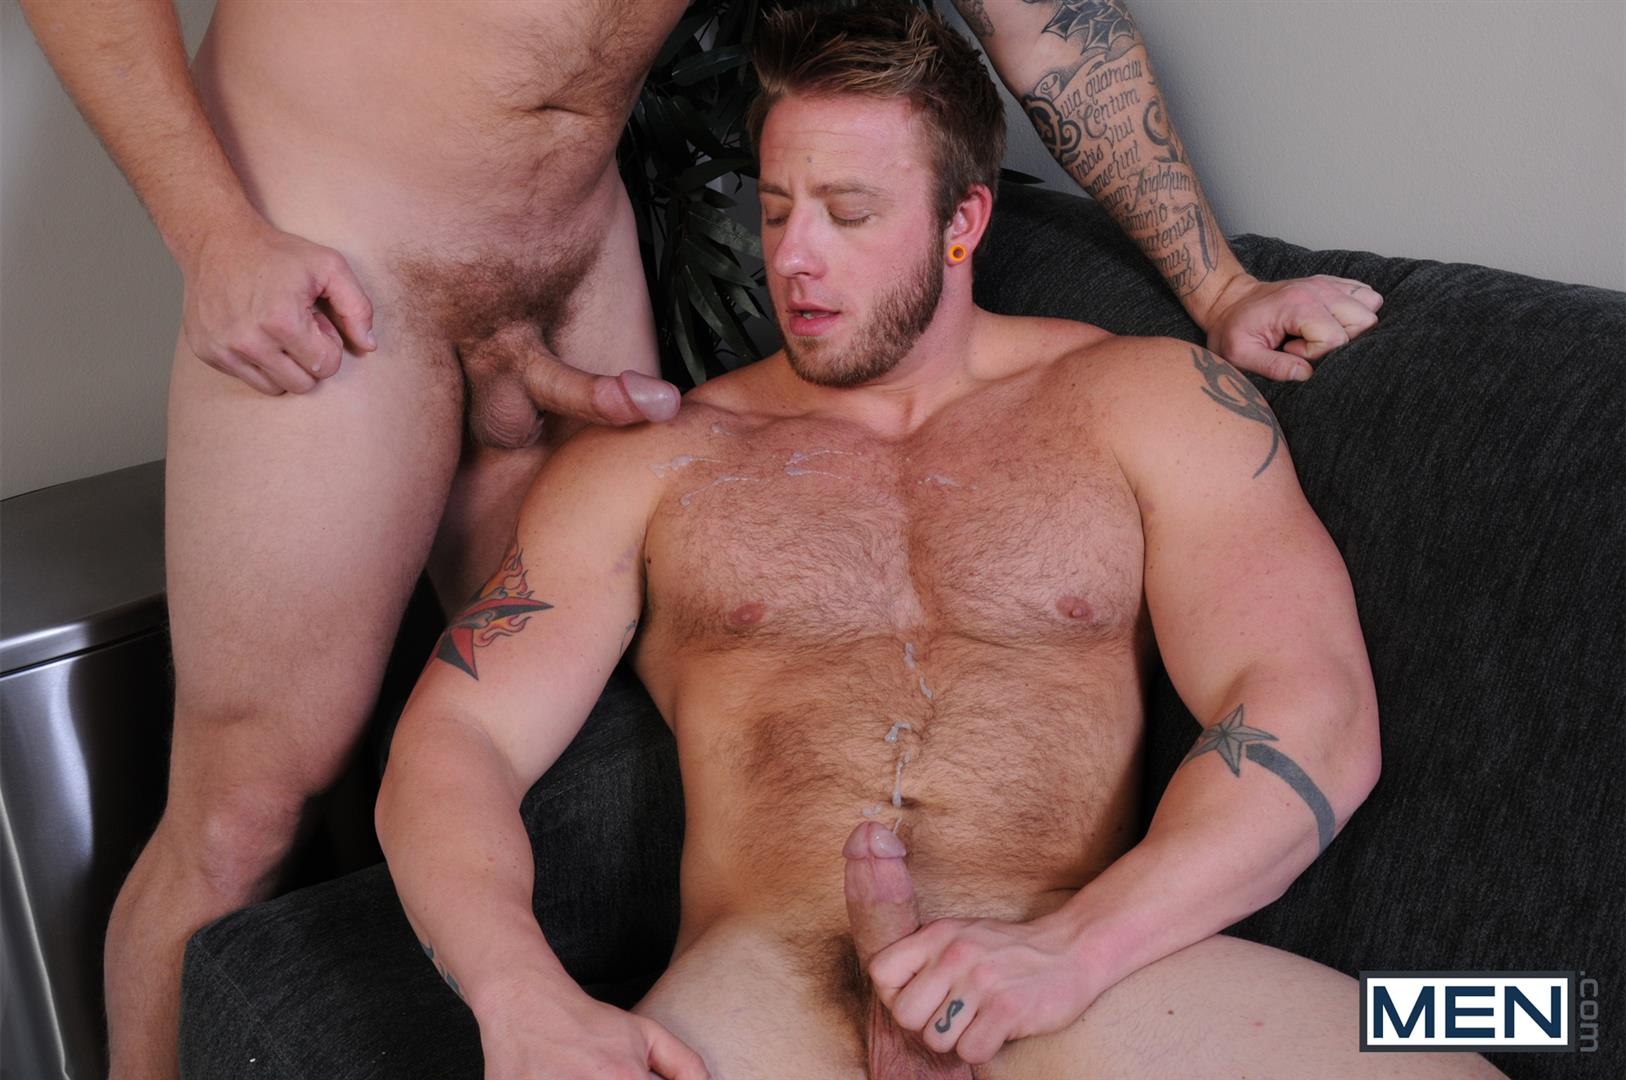 Men-Scrum-Colby-Jansen-and-Aaron-Bruiser-Hairy-Muscle-Guys-Fucking-With-Big-Cocks-Gay-Porn-15 Hairy Muscle Rugby Coach Fucking A Hairy Rugby Player